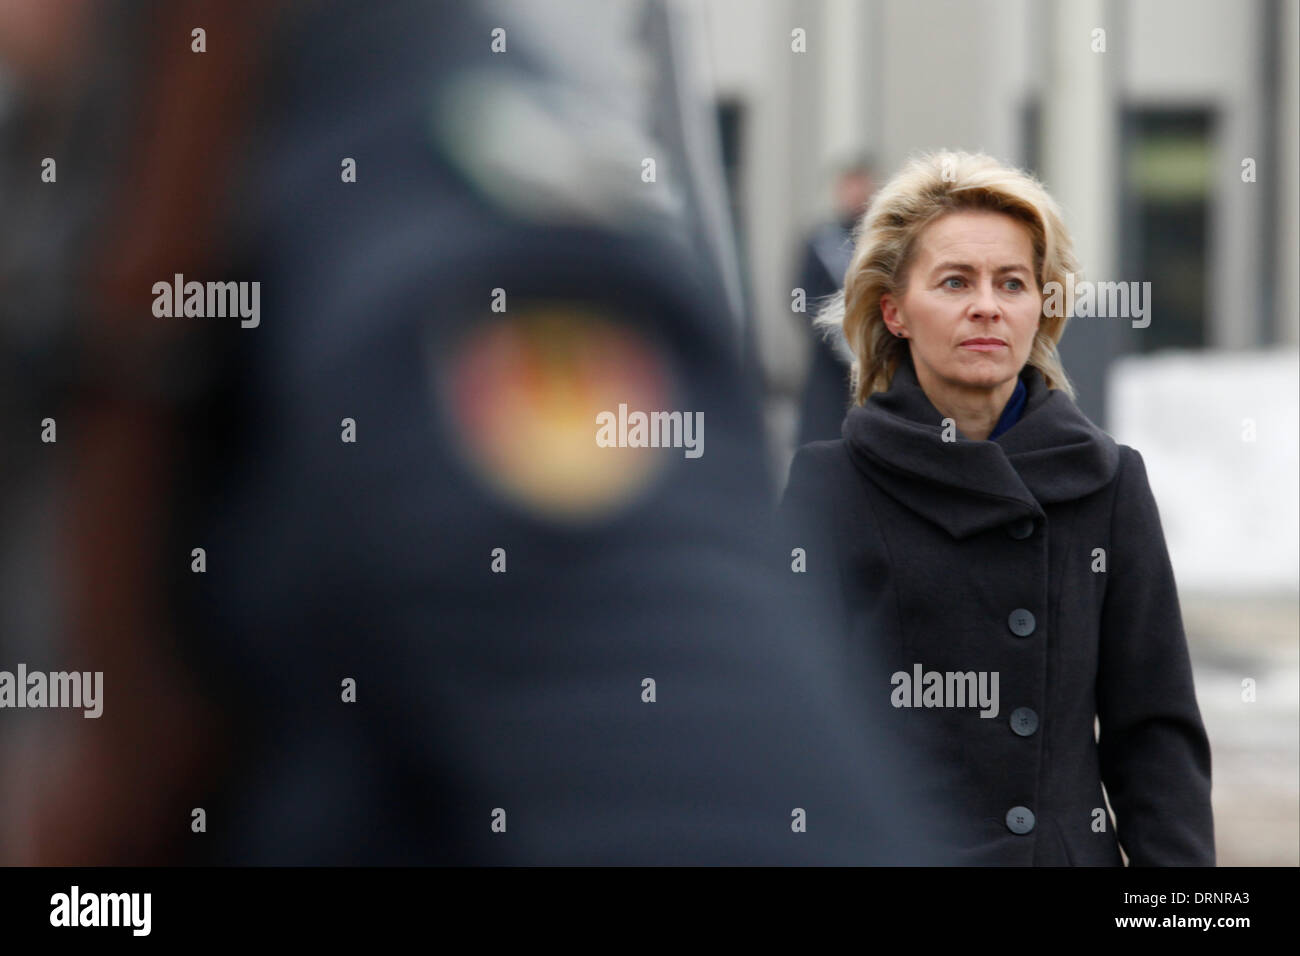 Berlin, Germany. January 30th, 2014. Ursula von der Leyen (CDU), Minister of Defence,  receives the Israeli Secretary of Defense, Mosche 'Bogie' Jaalon, with with military honors and give a joint press Statements. / Pictures: Ursula von der Leyen (CDU), Minister of Defence. Credit:  Reynaldo Chaib Paganelli/Alamy Live News - Stock Image